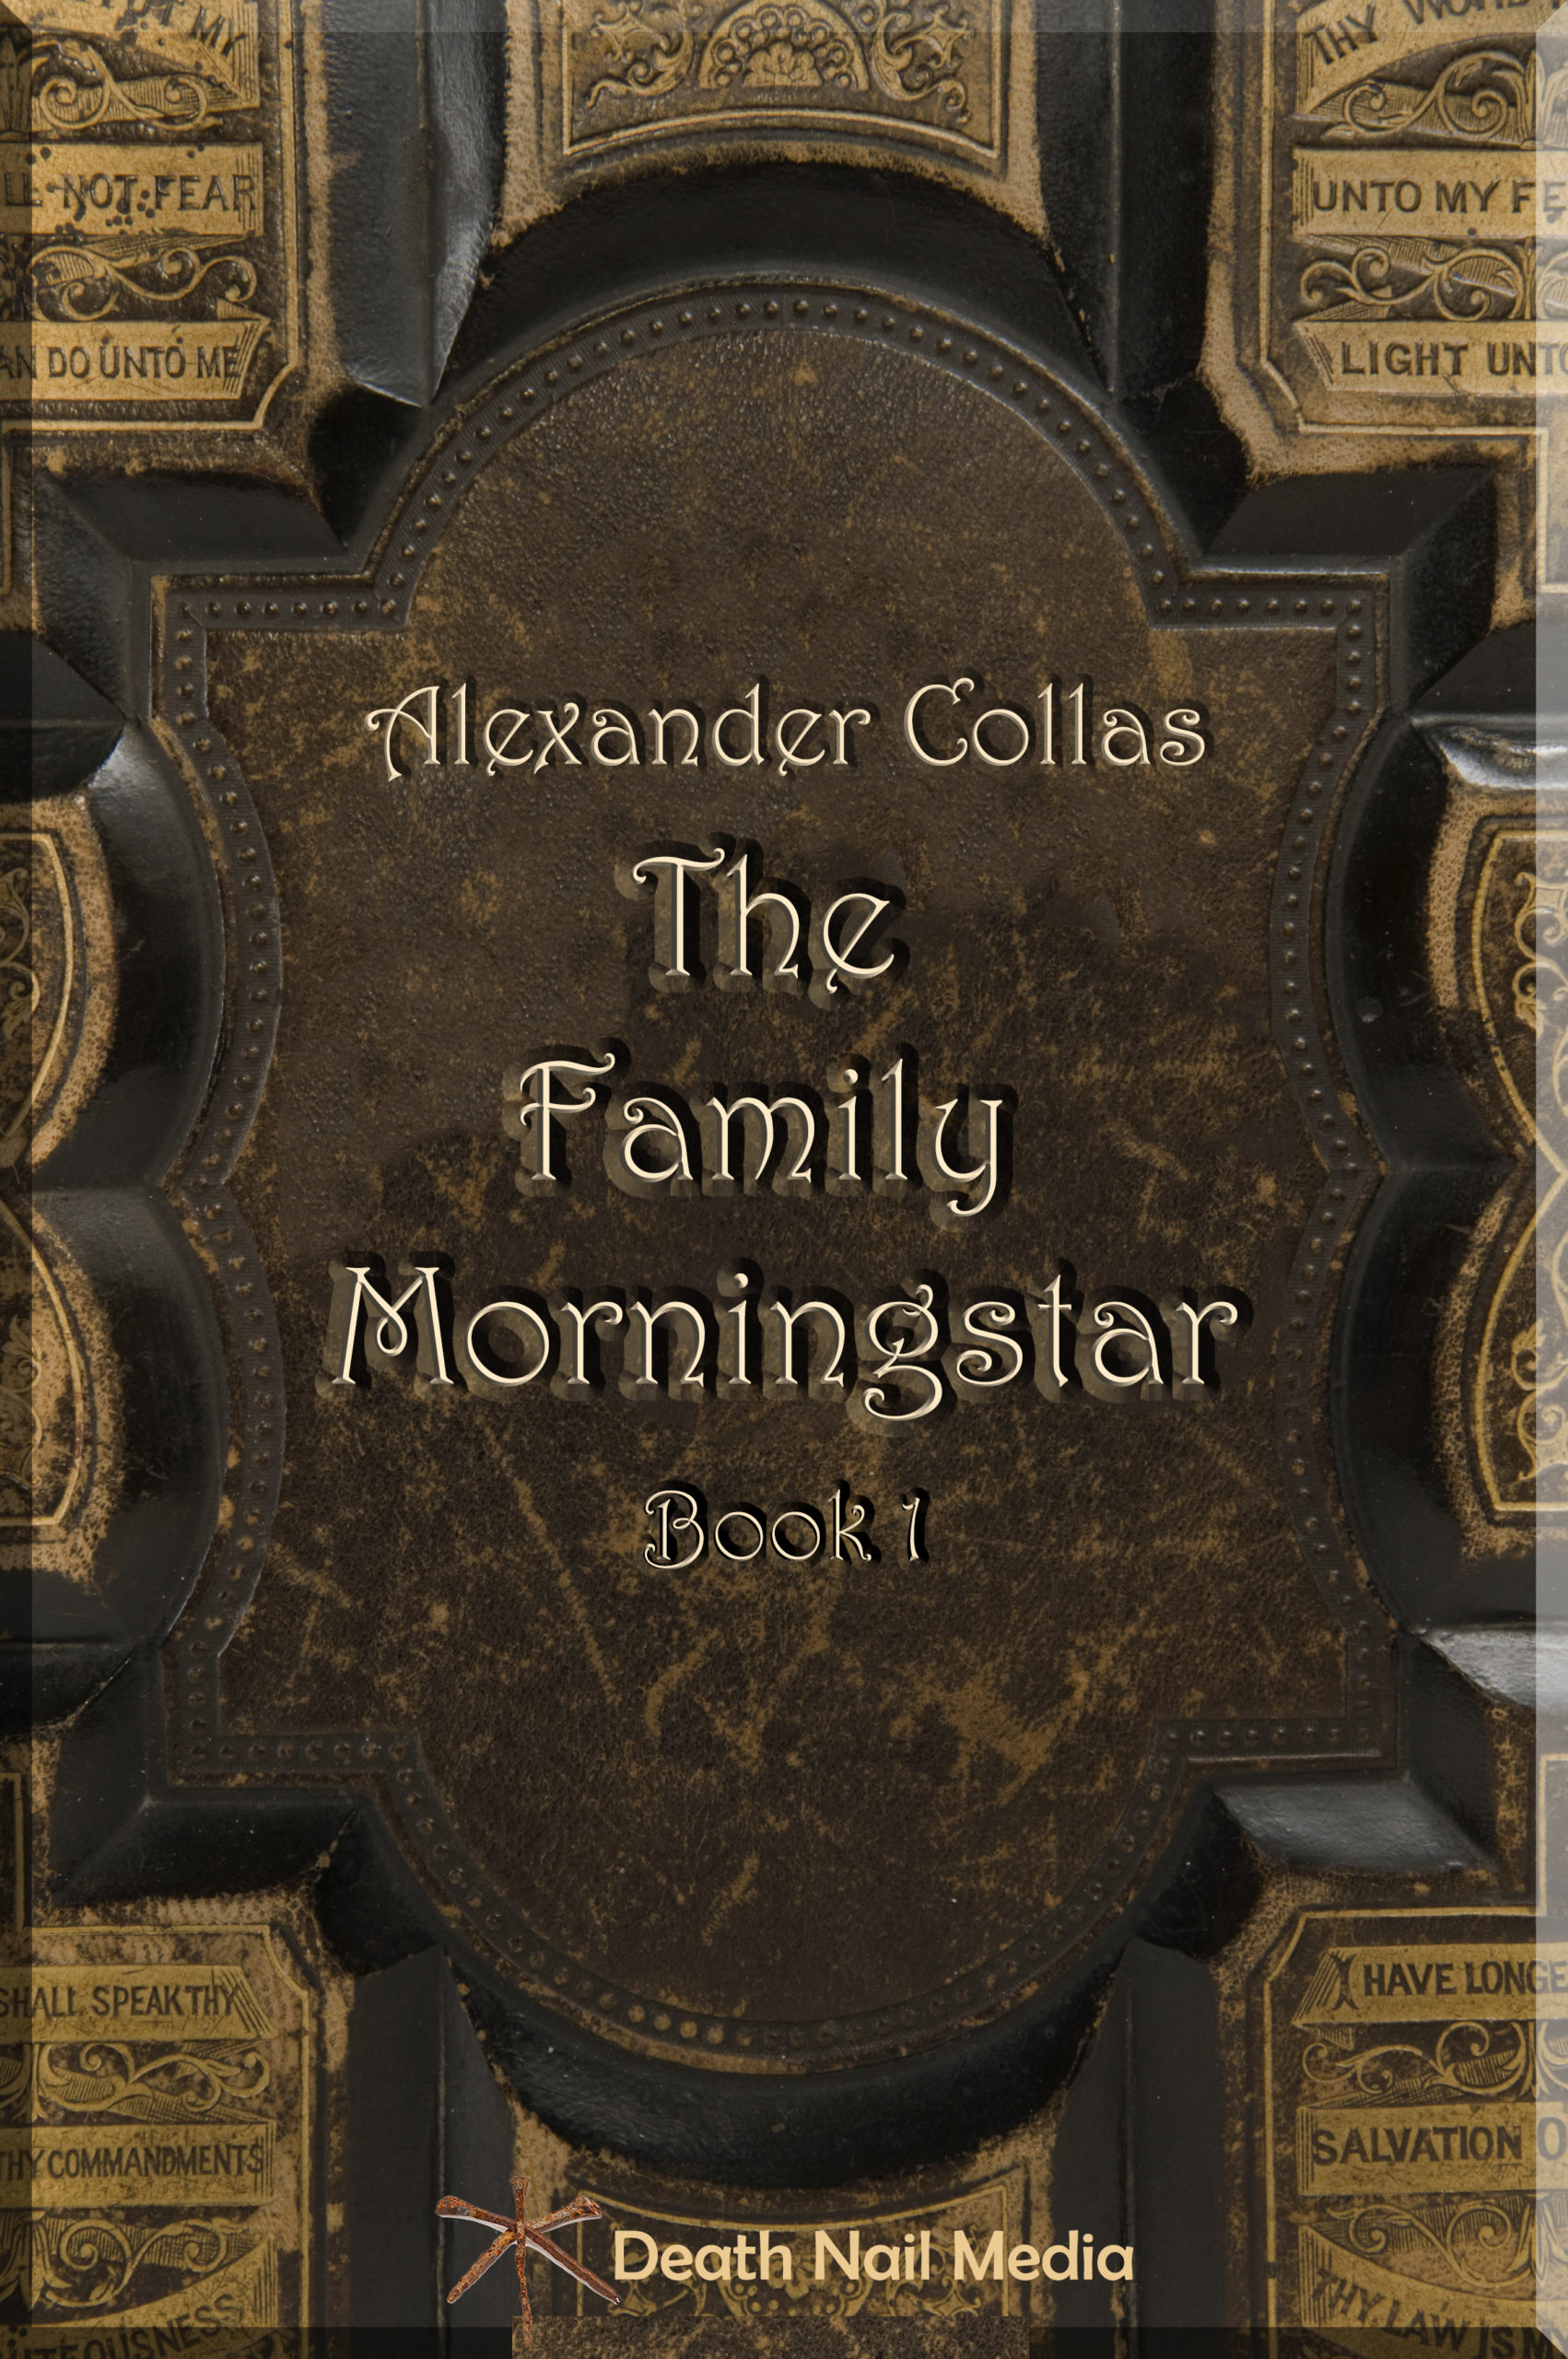 The Family Morningstar: Book 1